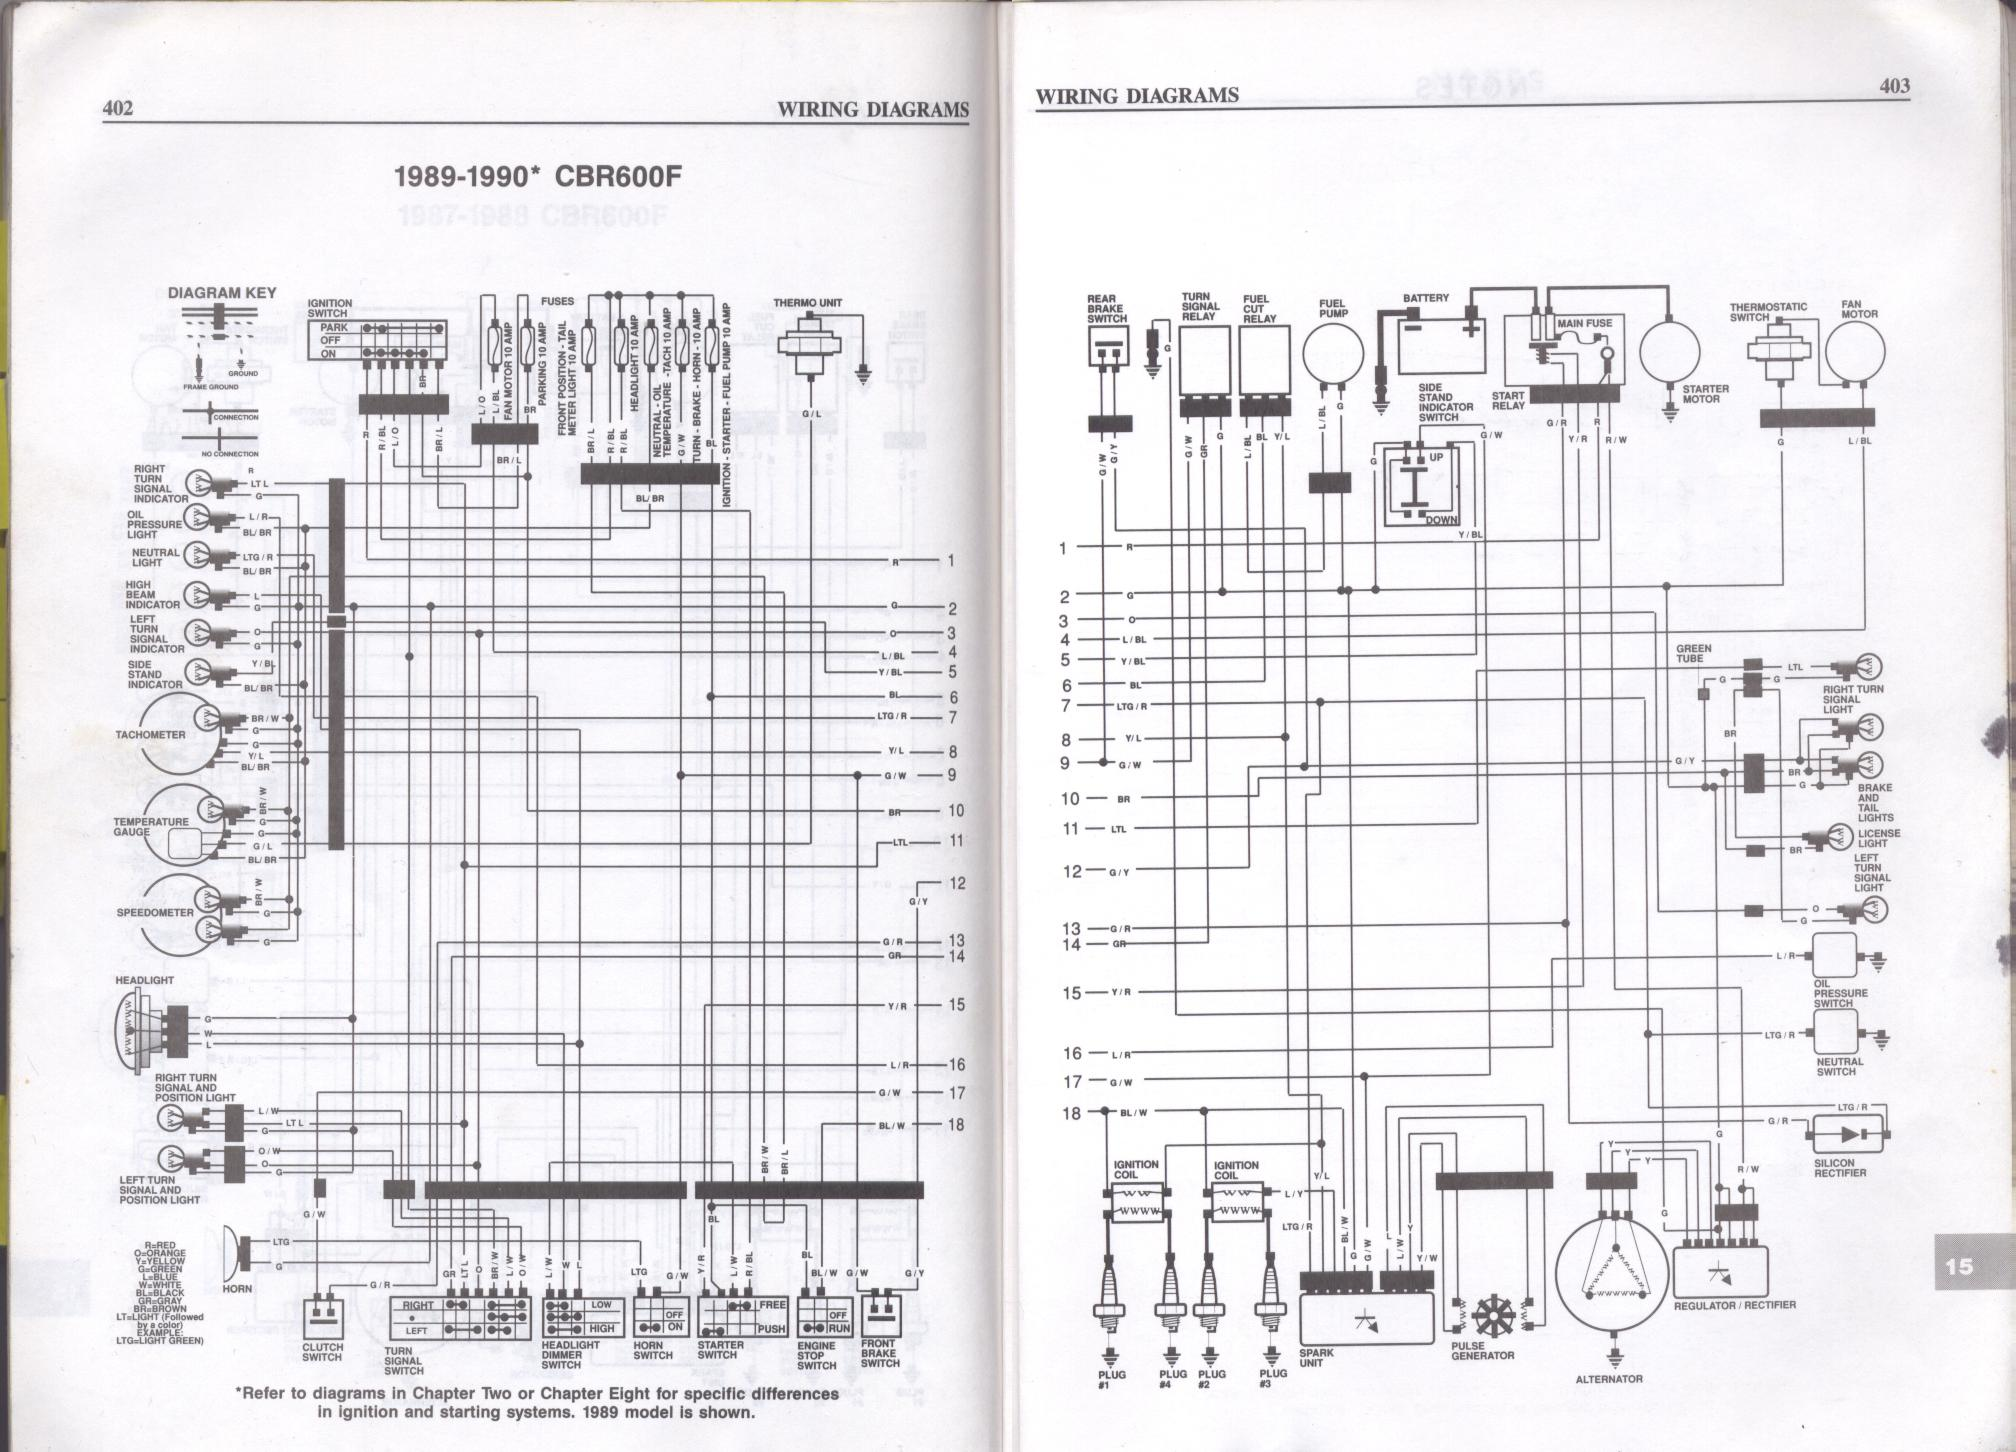 Wiring Diagram For 1990 Honda Cbr Download Wiring Diagrams \u2022 Honda CBR  F4 1999 Wiring Diagram 1992 Honda Cbr 600 Wiring Diagram